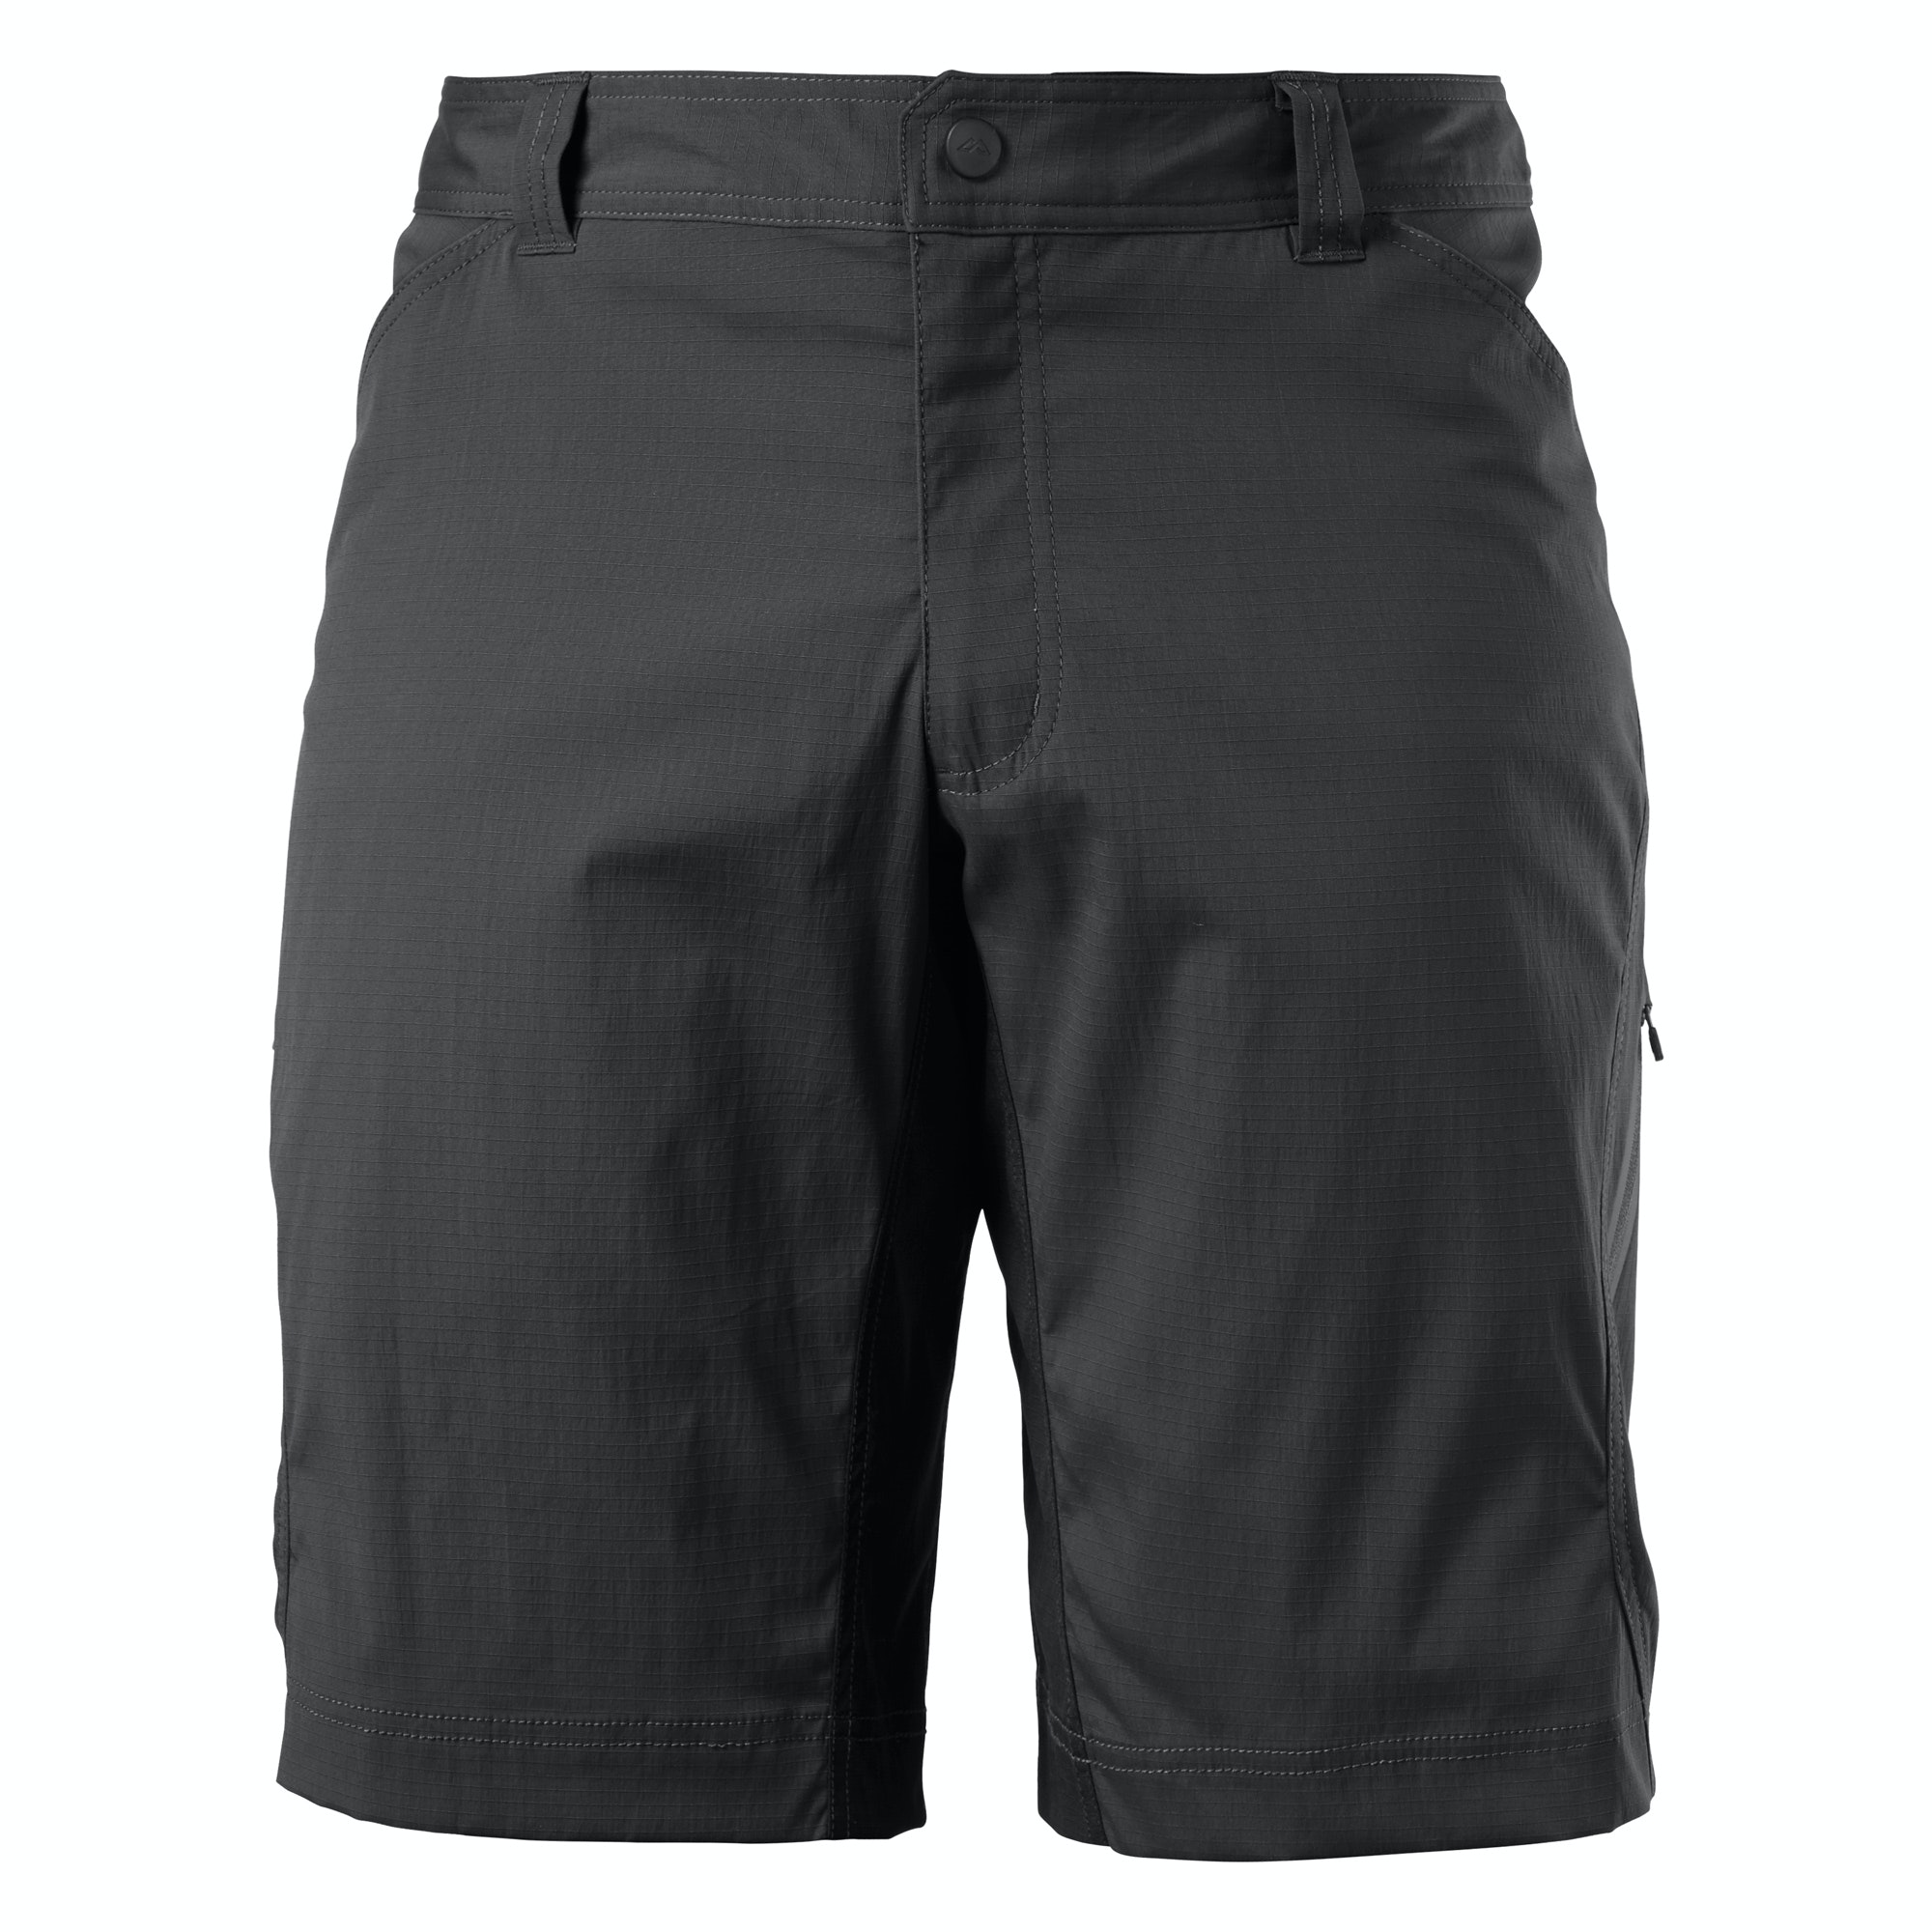 thumbnail 8 - NEW-Kathmandu-Aklo-Men-039-s-Walking-Hiking-Travel-Shorts-Pants-UPF-50-Protection